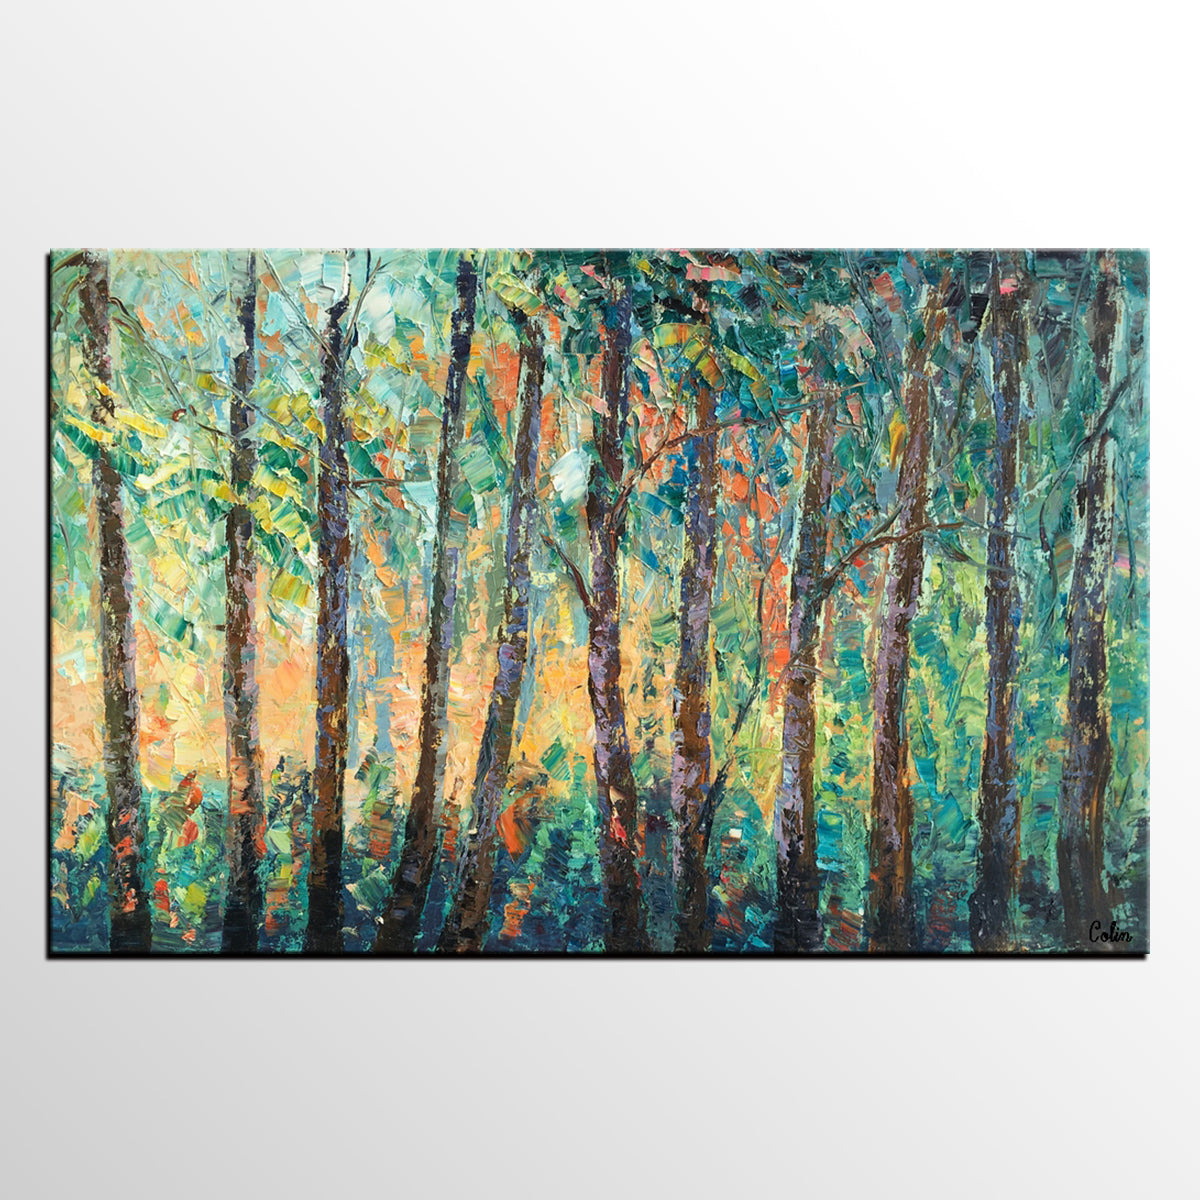 Landscape Painting, Large Canvas Art, Wall Art, Birch Tree Artwork, Canvas Painting, Original Oil Painting